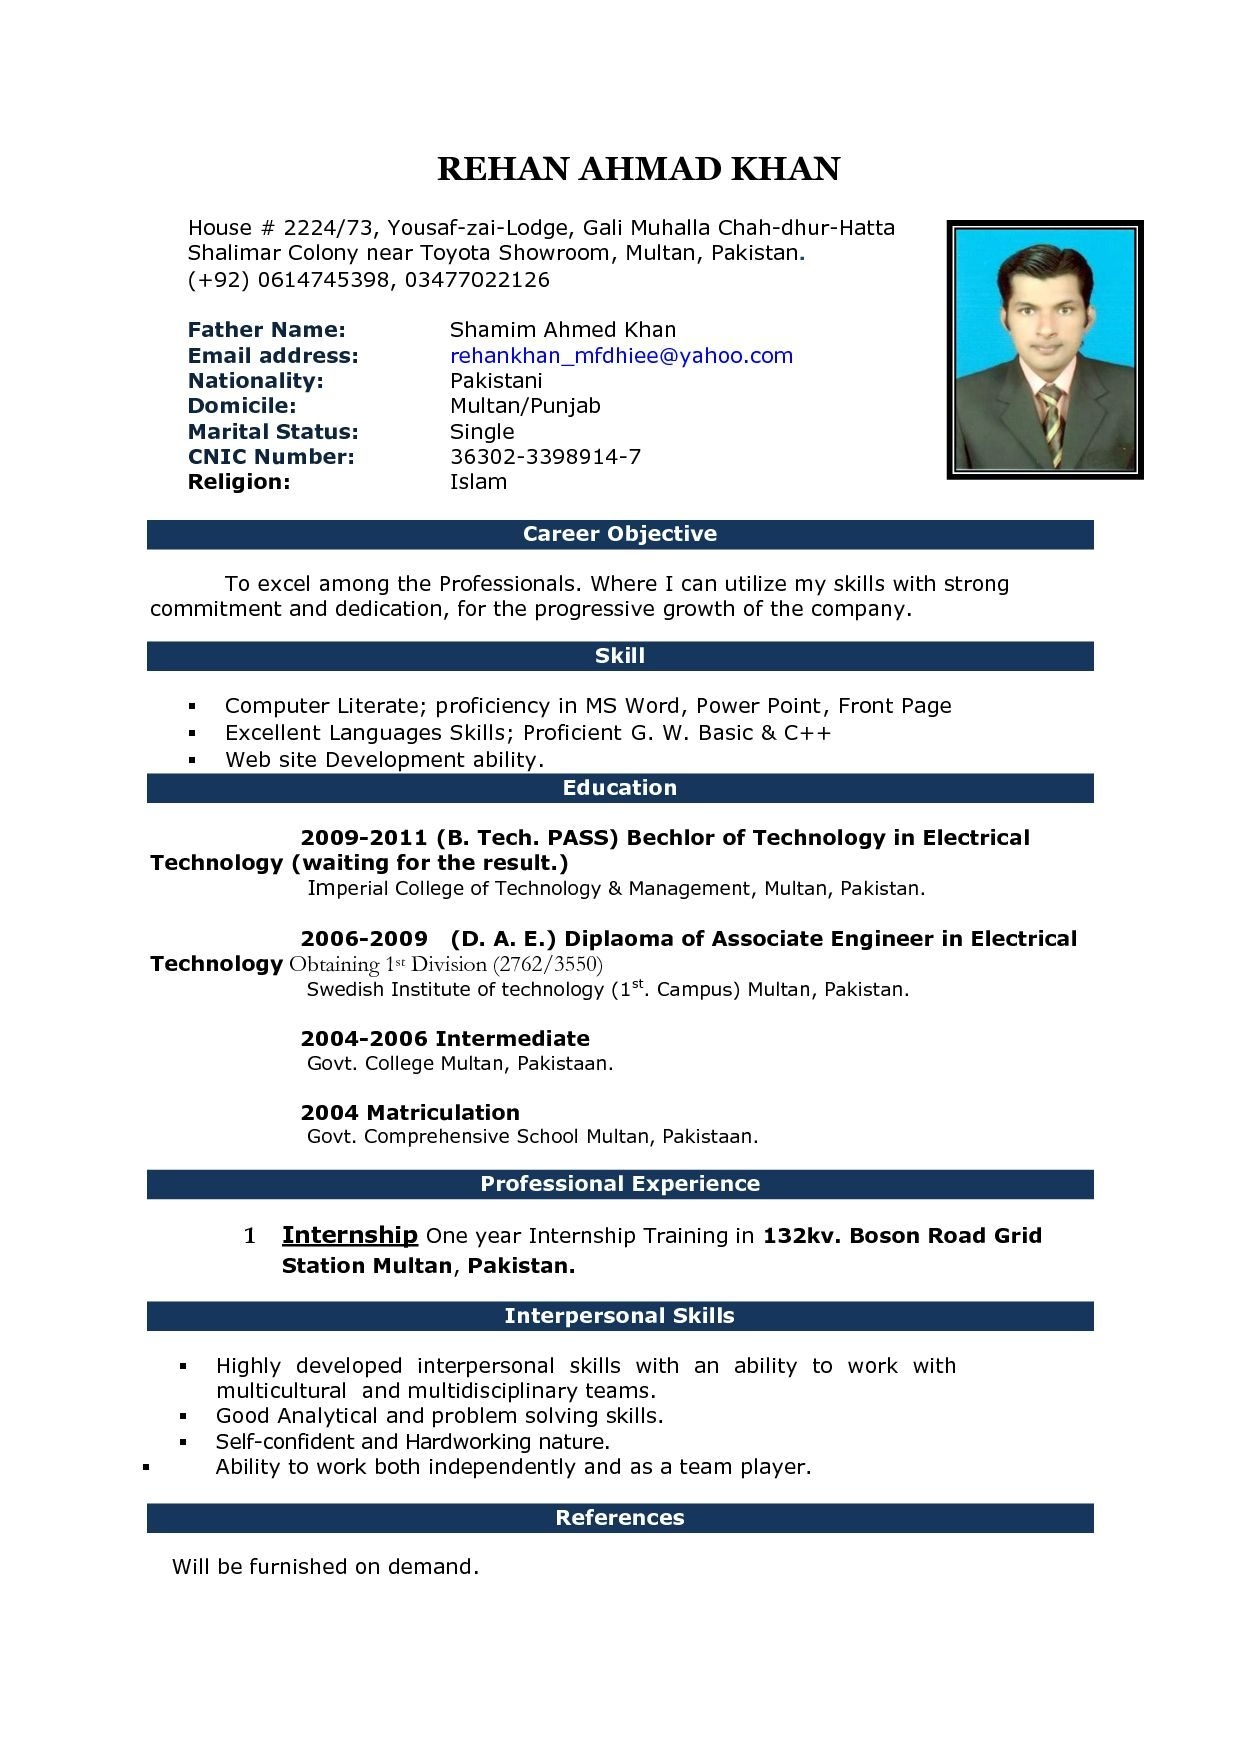 powerful resume format of for fresher in ms word pdf my blog job freshers best look Resume Download Job Resume Format For Freshers